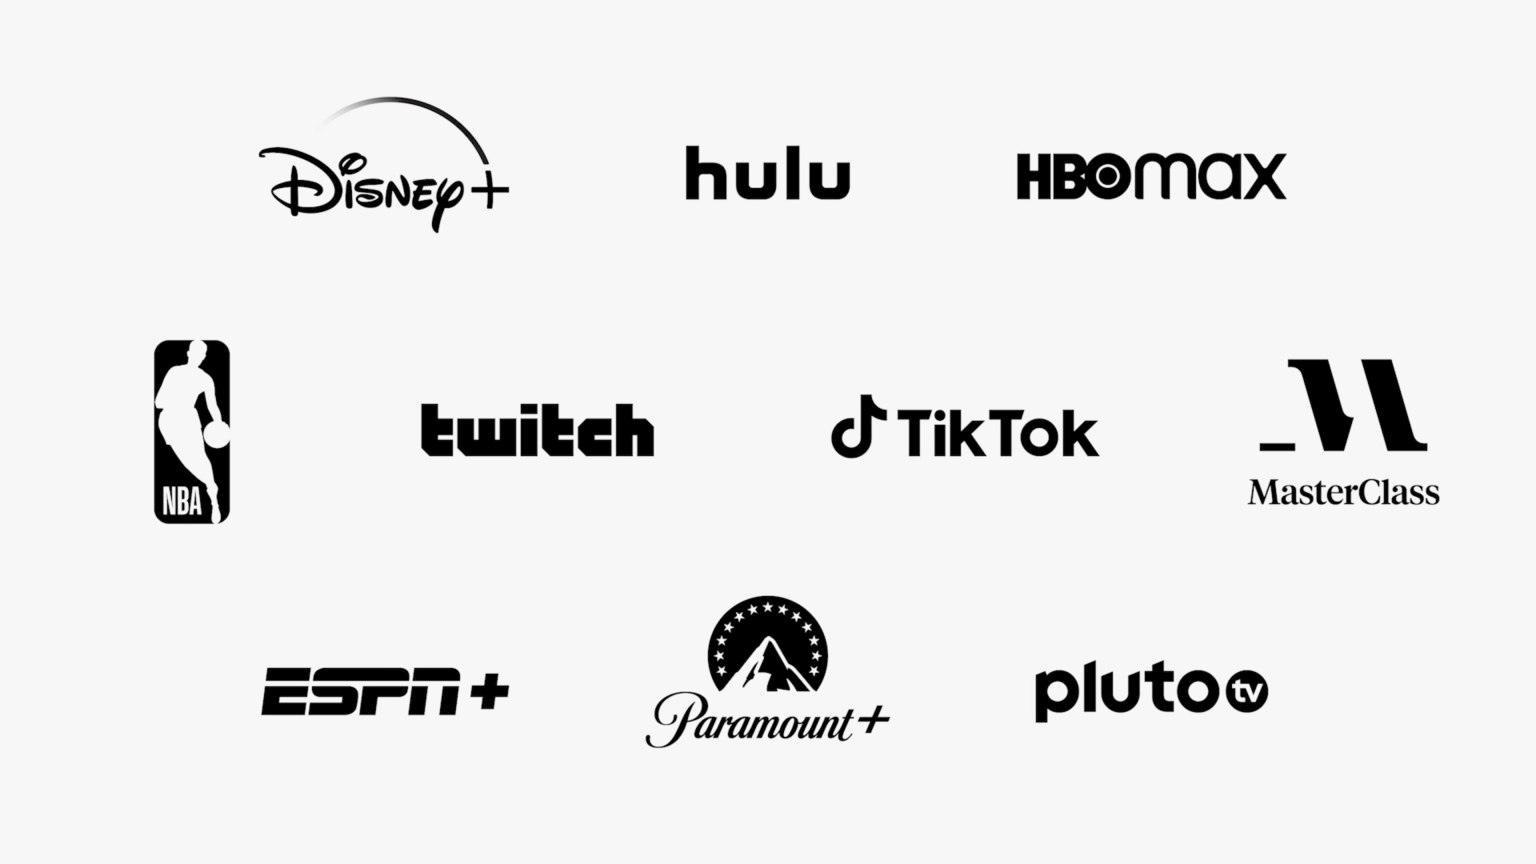 SharePlay update will be compatible with Disney+, Hulu, HBO Max, Twitch, TikTok, and more.